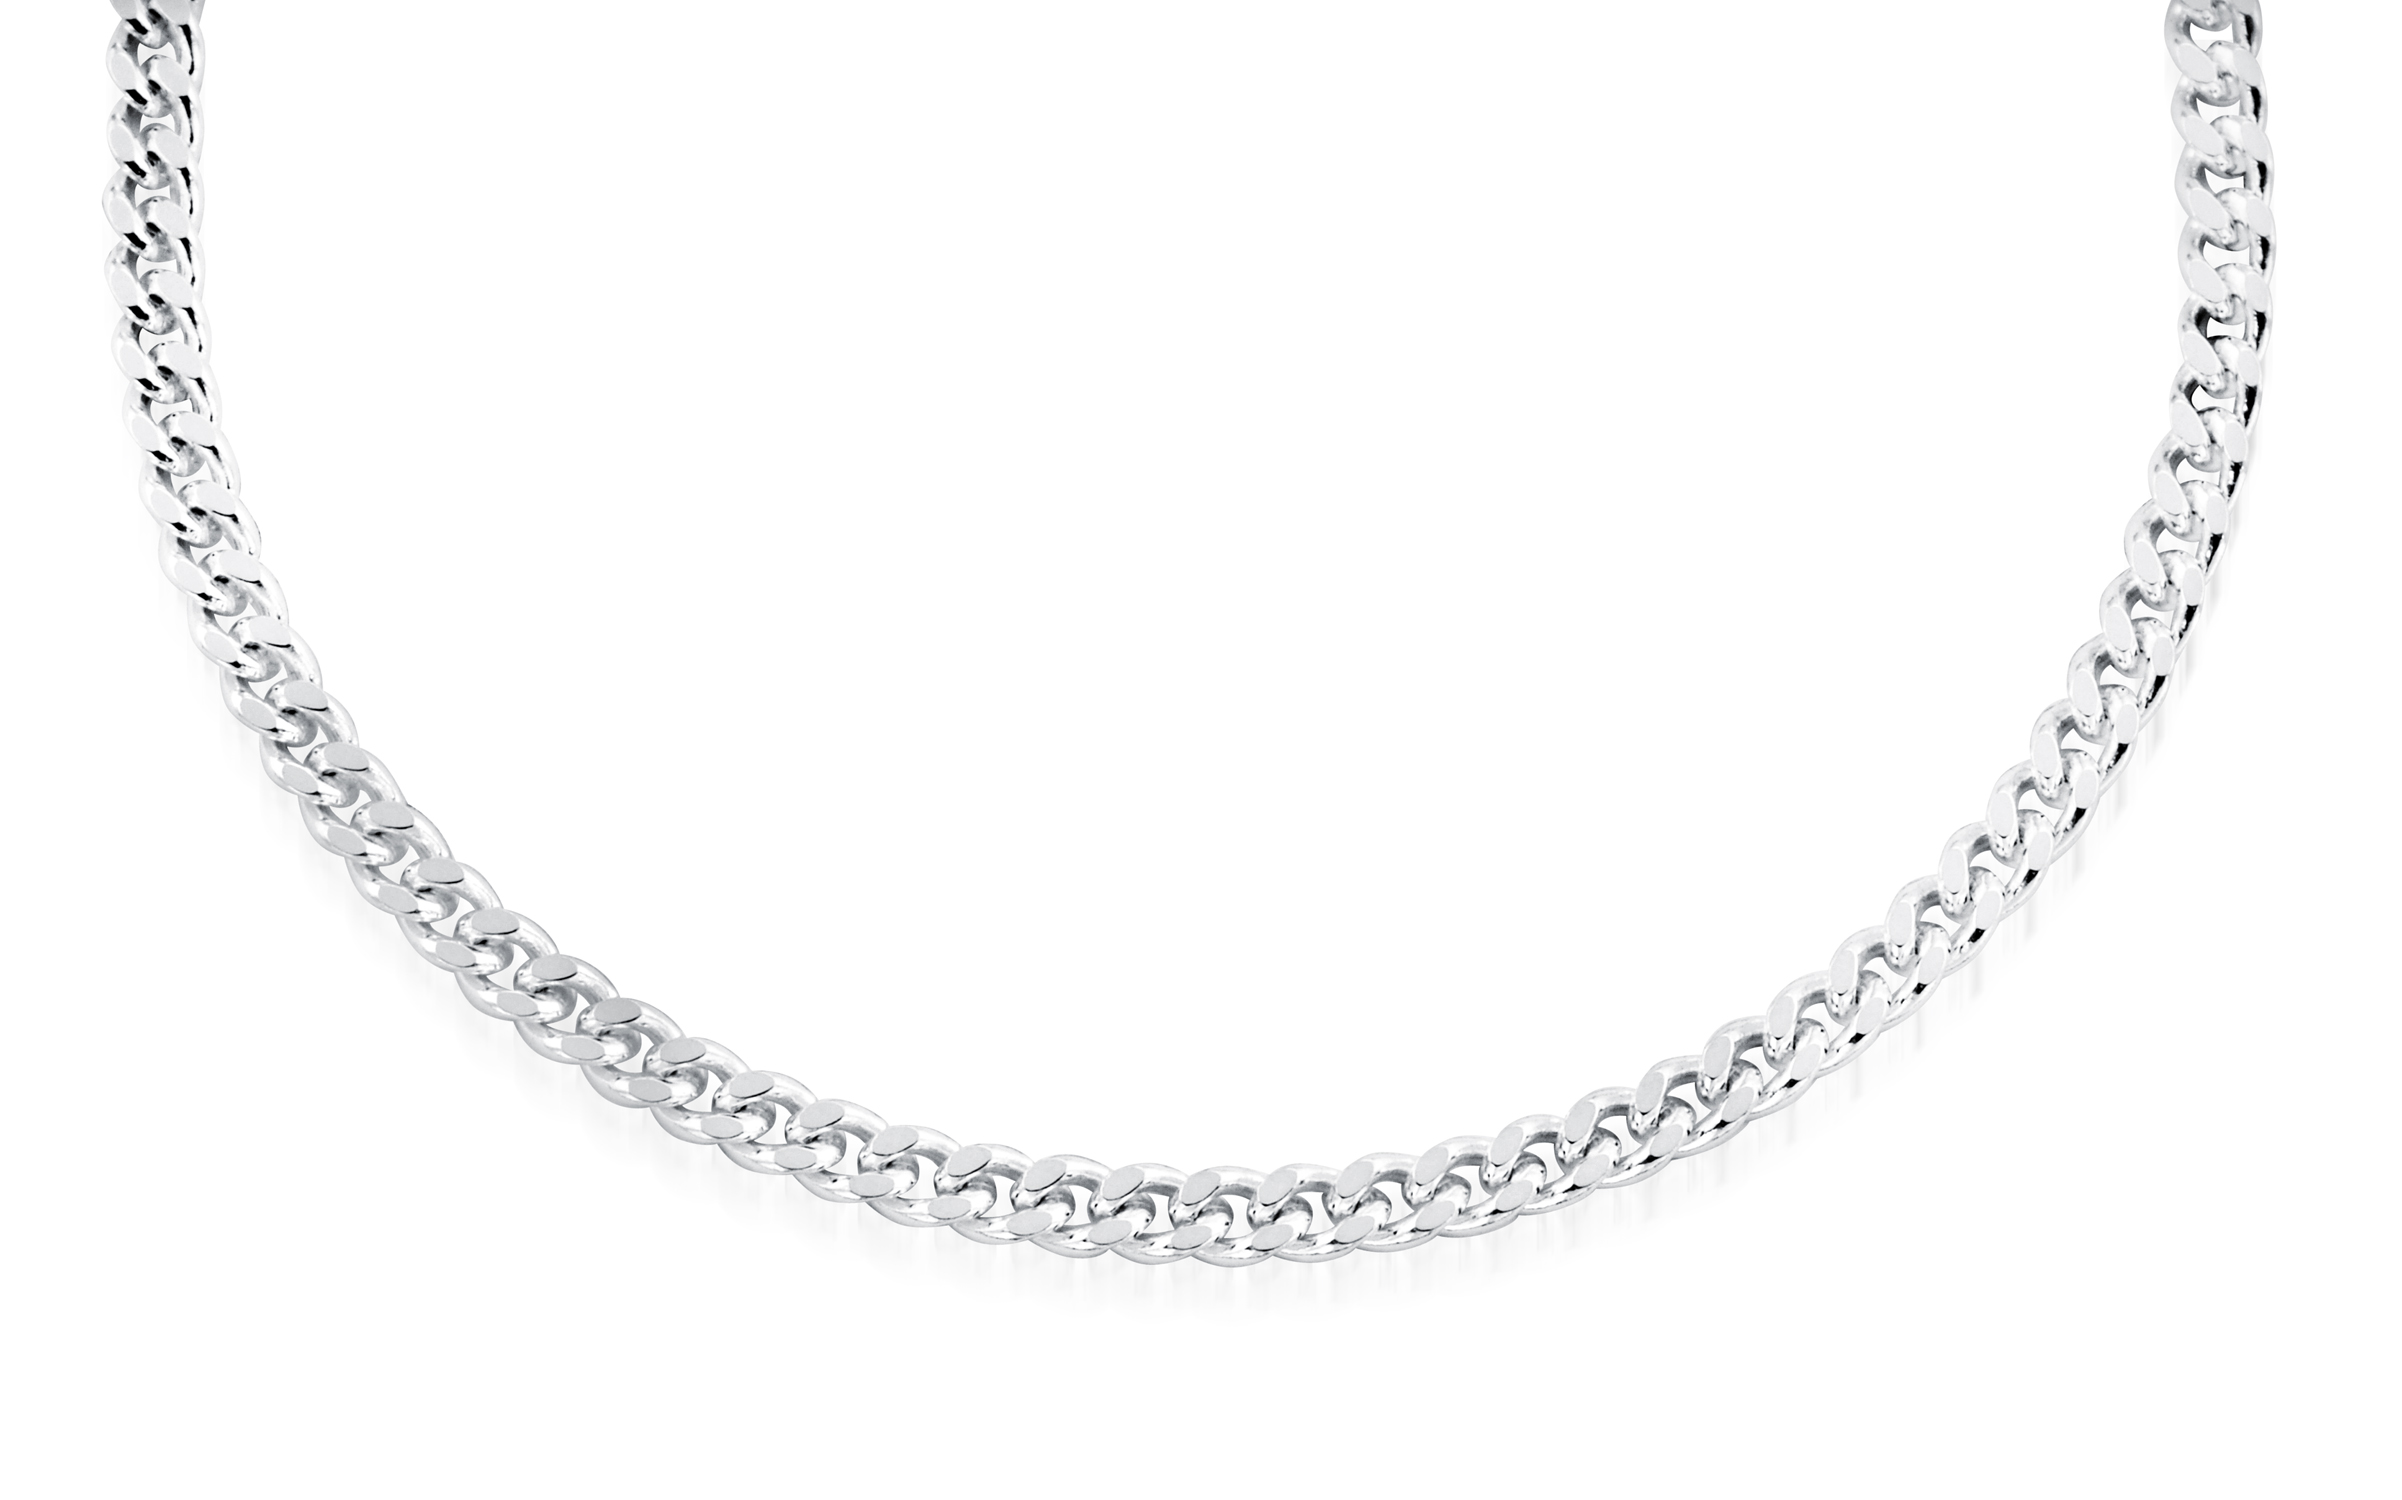 10'' Curb ankle chain for women - Sterling silver